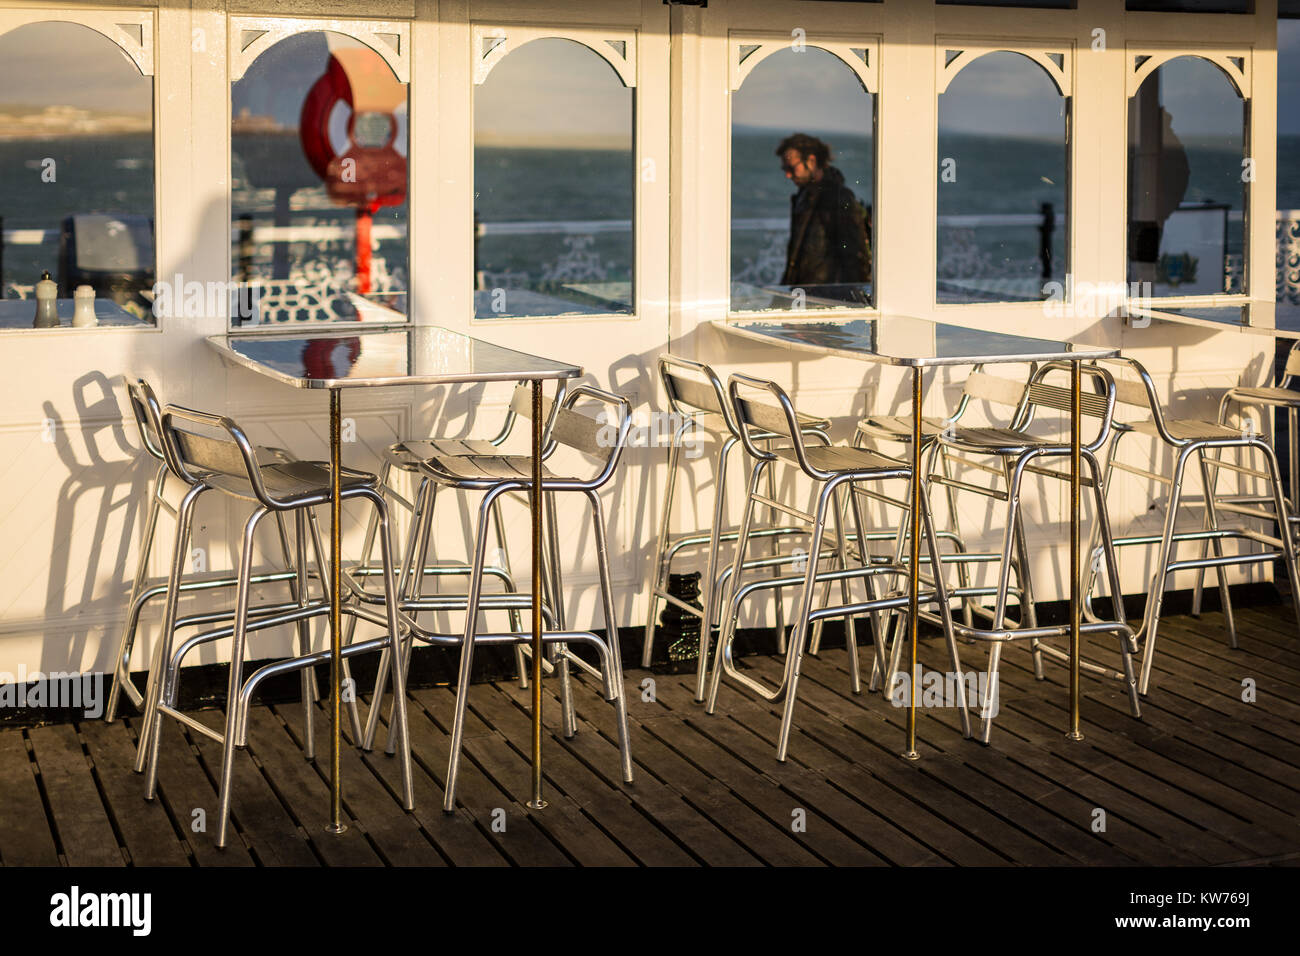 Aluminium tables and chairs wait for diners at an outdoor cafe on Brighton Pier - Stock Image